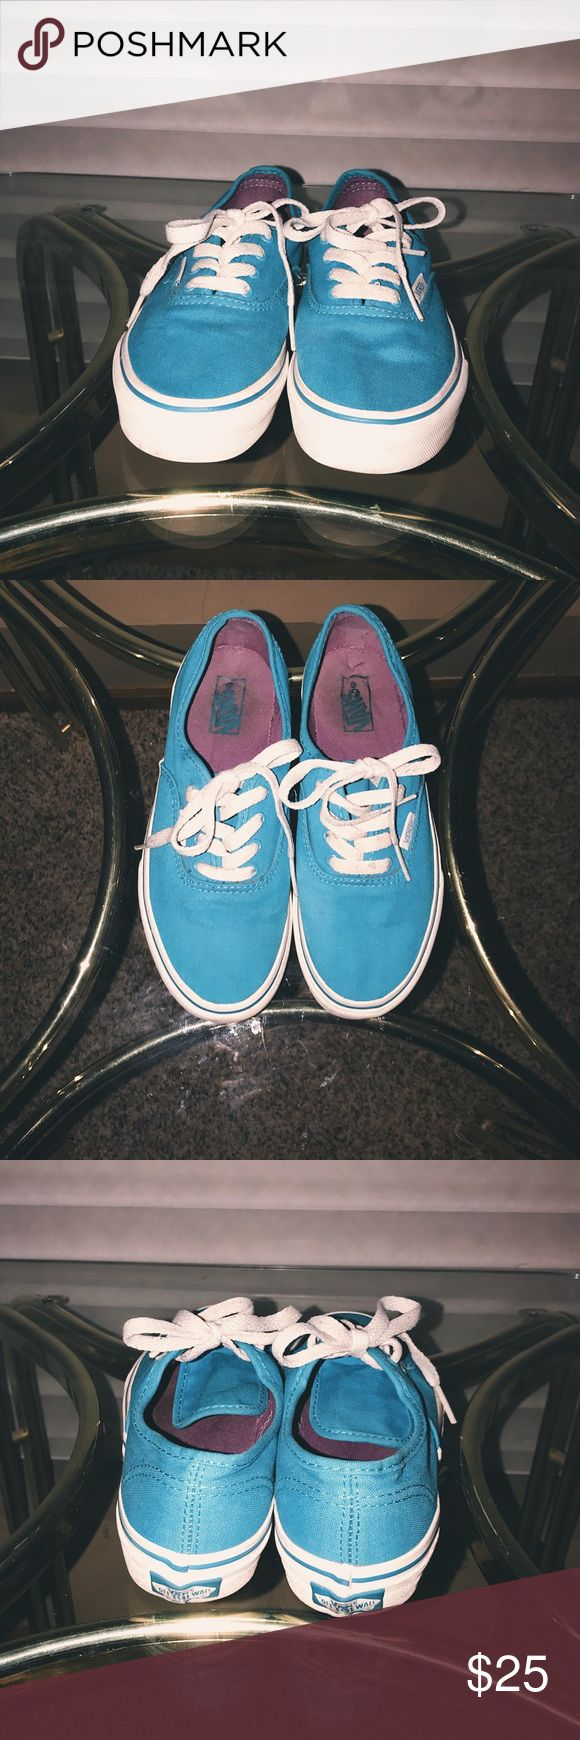 Blue Vans 💙 -condition : 7/10 -signs of wear : dirty and slightly scuffed but all shoes are cleaned before shipping -nwot -brand : Vans -size : 5/6 -colors : blue -details : purple inside -bundles save! -price : negotiable, use the offer button! Vans Shoes Sneakers